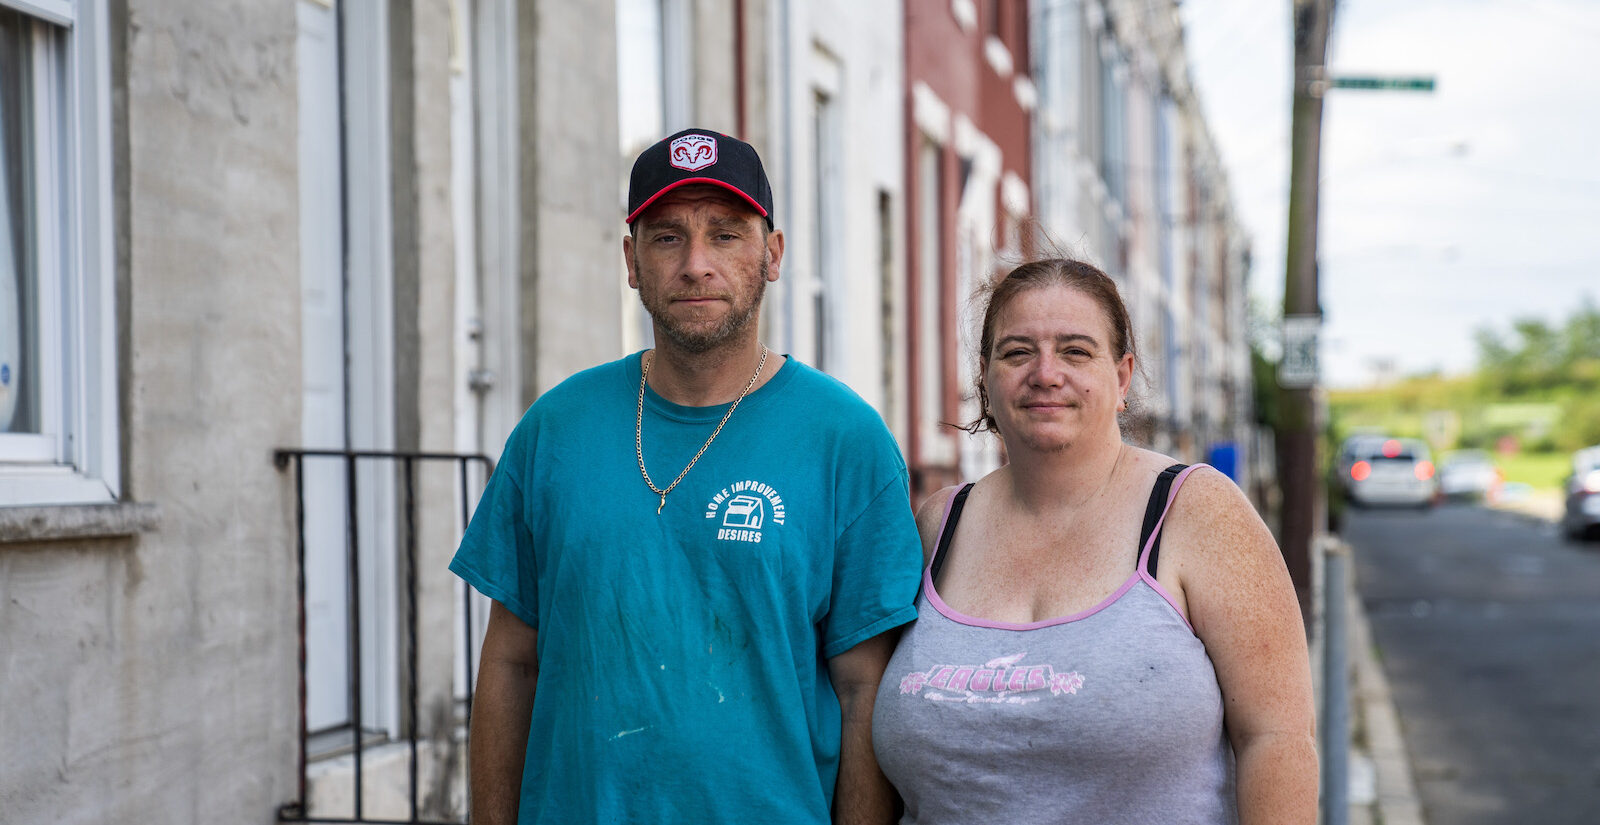 Pennsylvania's eviction moratorium expires Aug 31. Mike Fallaro and Lisa Swinehart have already begun packing and boxing their things, awaiting a threatened eviction that could come the first week their daughters are slated to start virtual school. (Jessica Kourkounis for Keystone Crossroads)